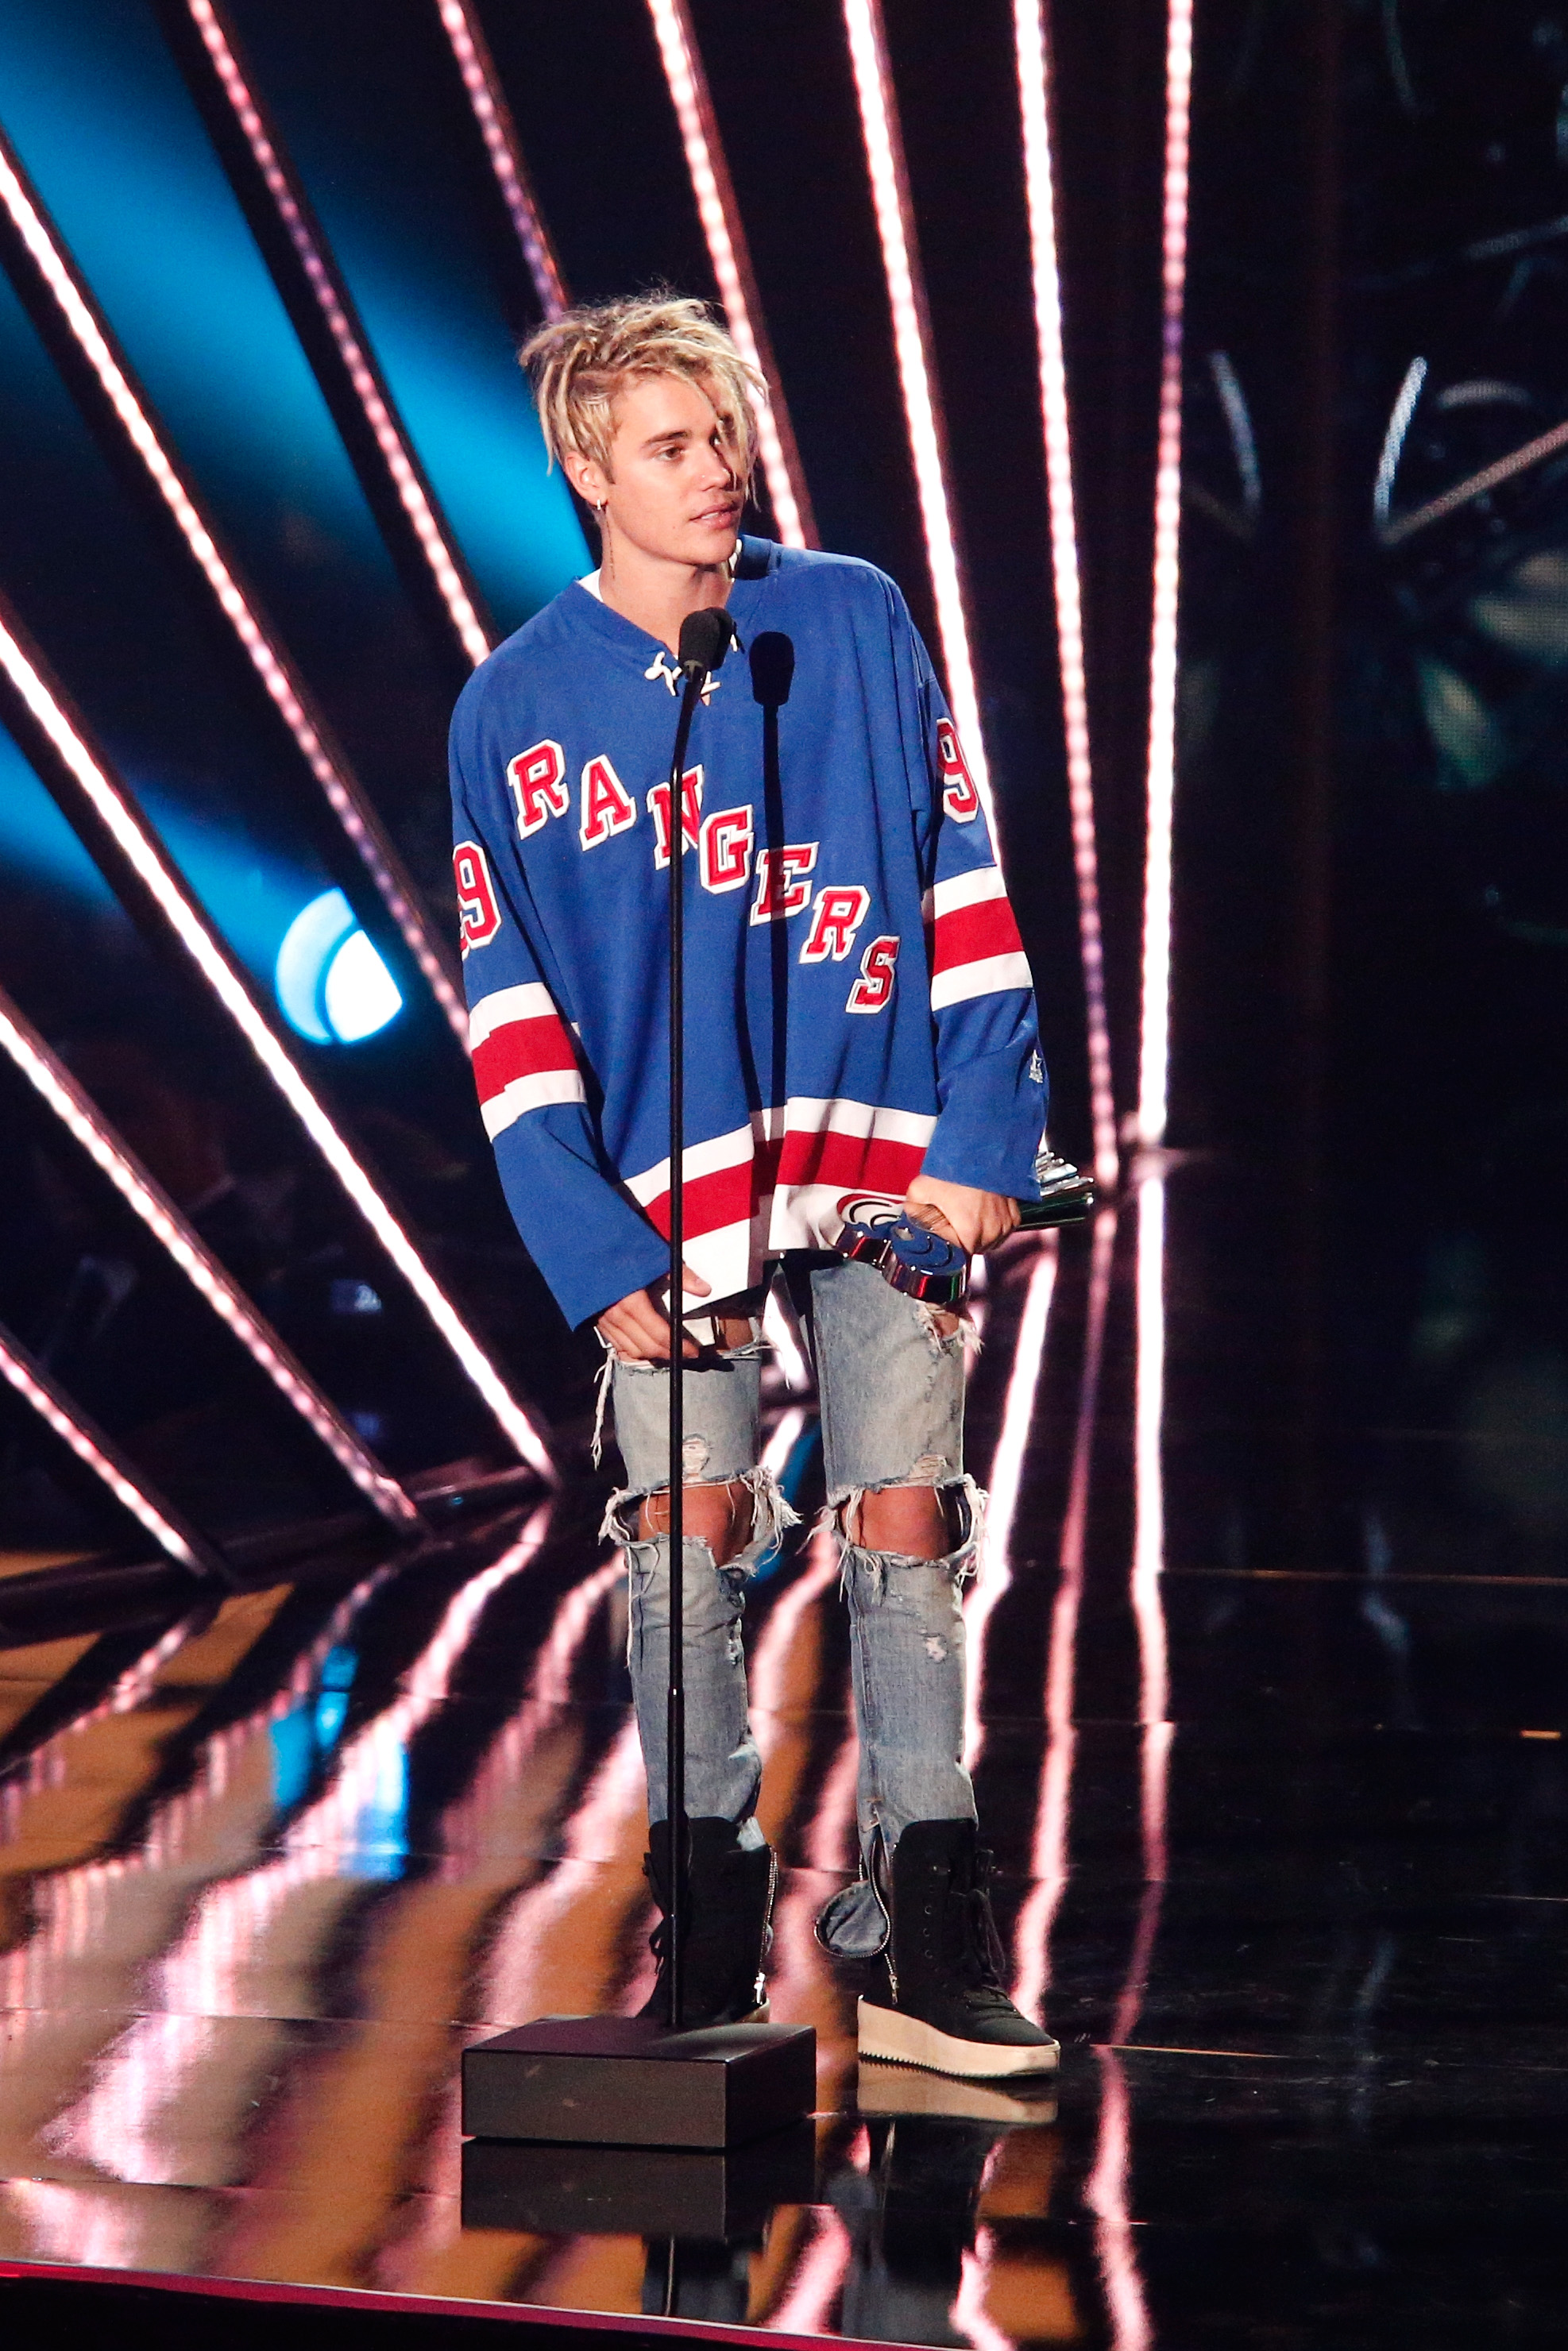 Justin Bieber dons a hockey sweater at a recent awards show